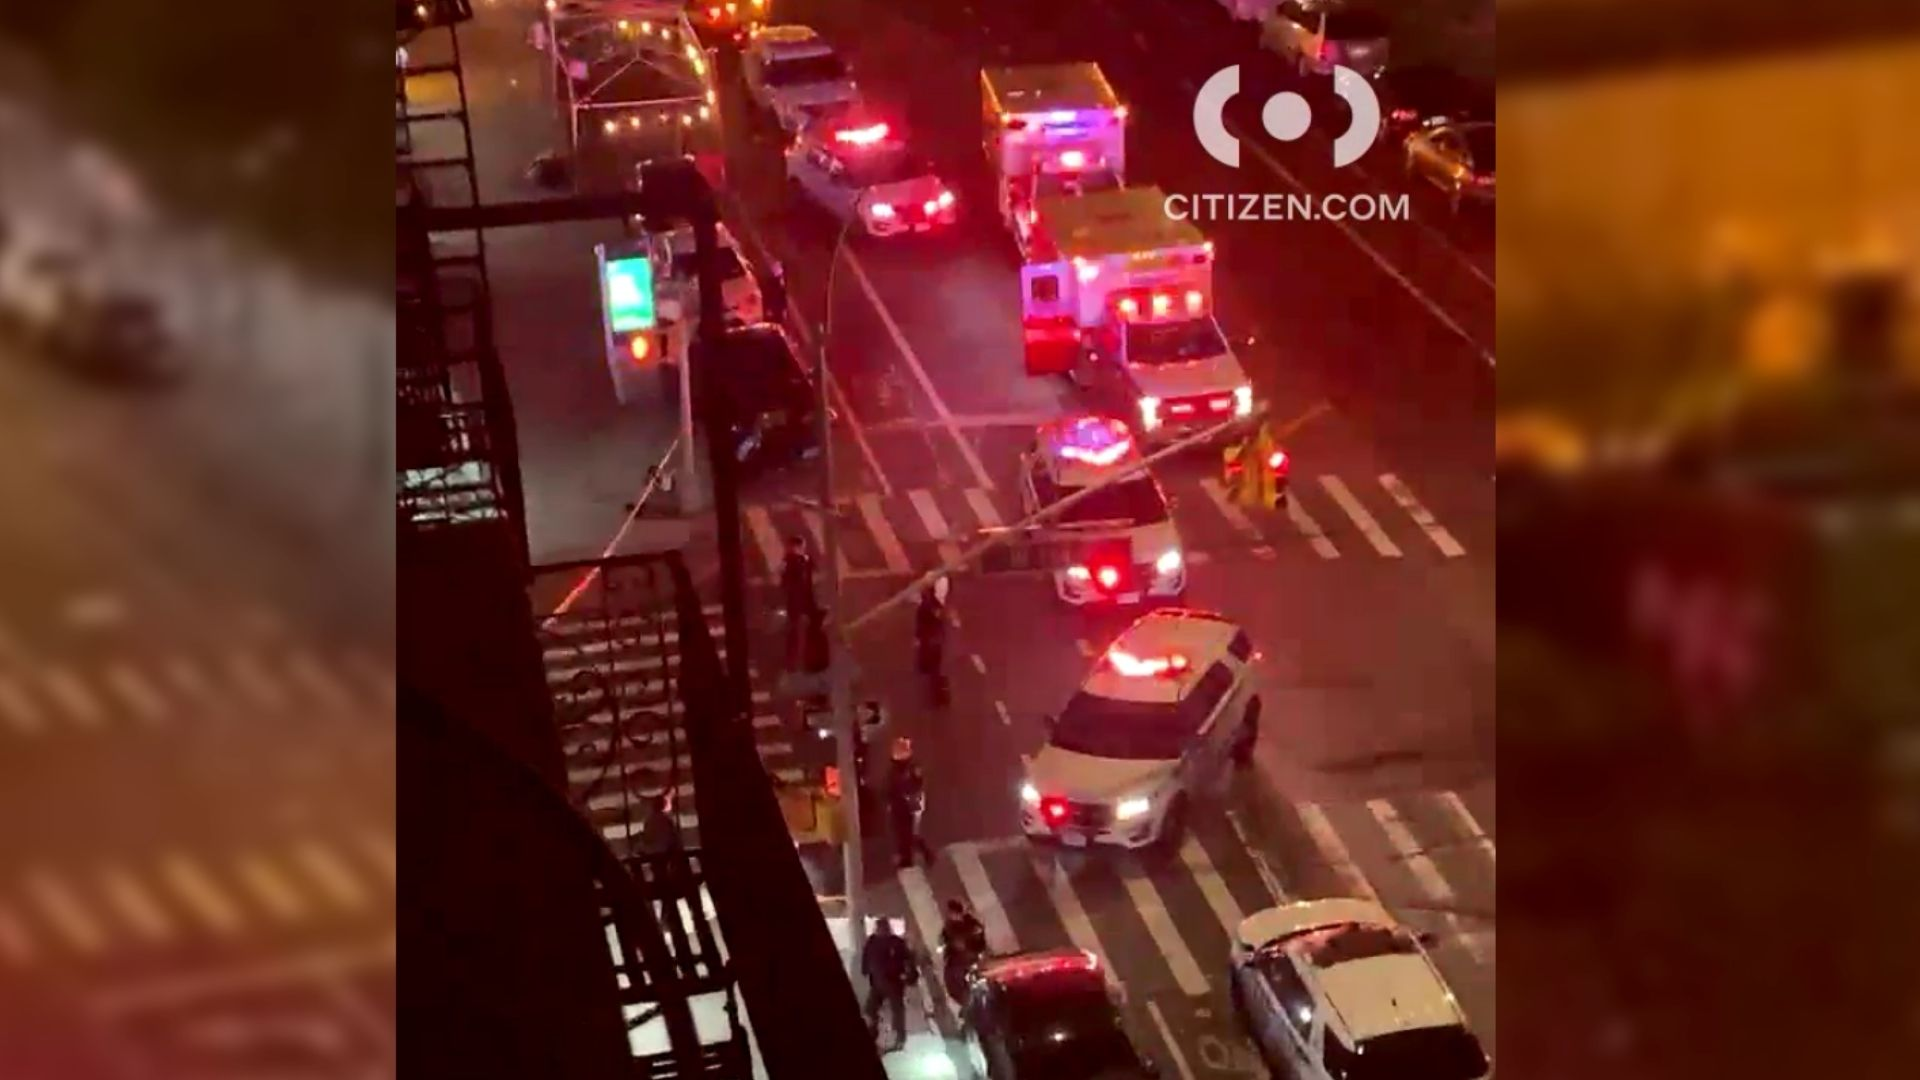 Police on the scene after a 17-year-old boy was shot during a dispute in Harlem